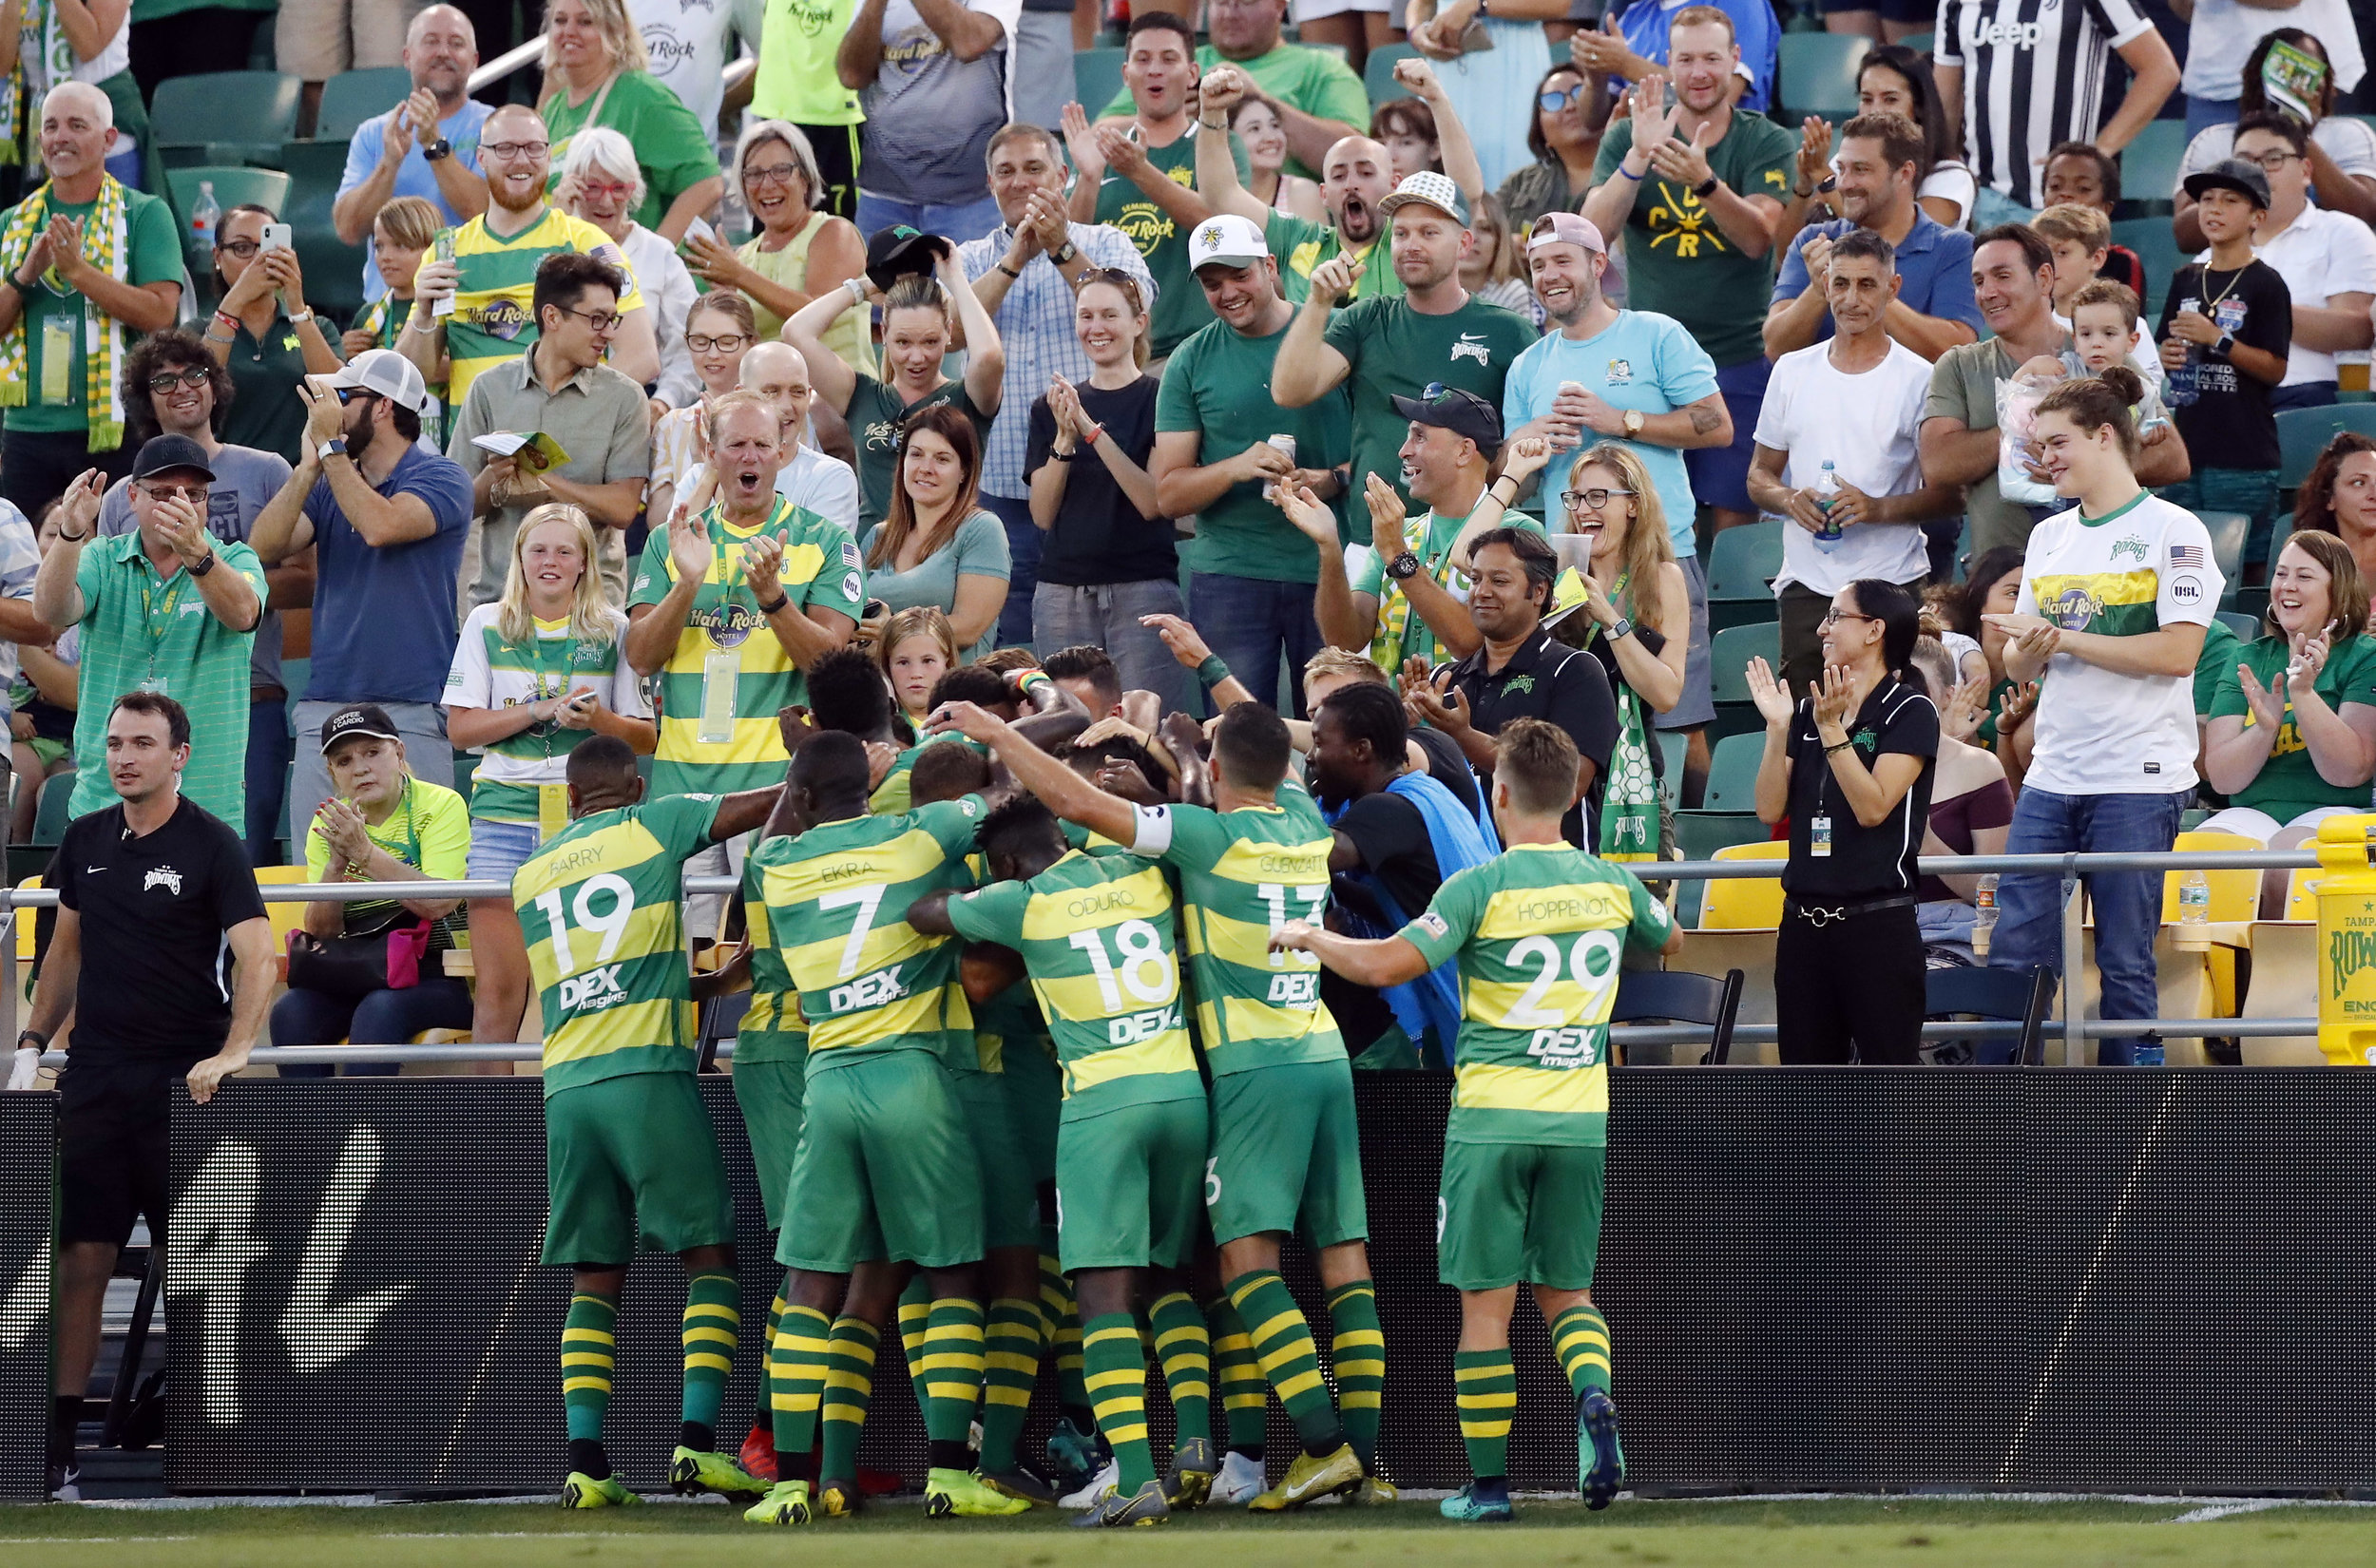 Tampa Bay Rowdies players celebrate in front of their fans.  |   Photo courtesy ofTampaBay Rowdies/Matt May